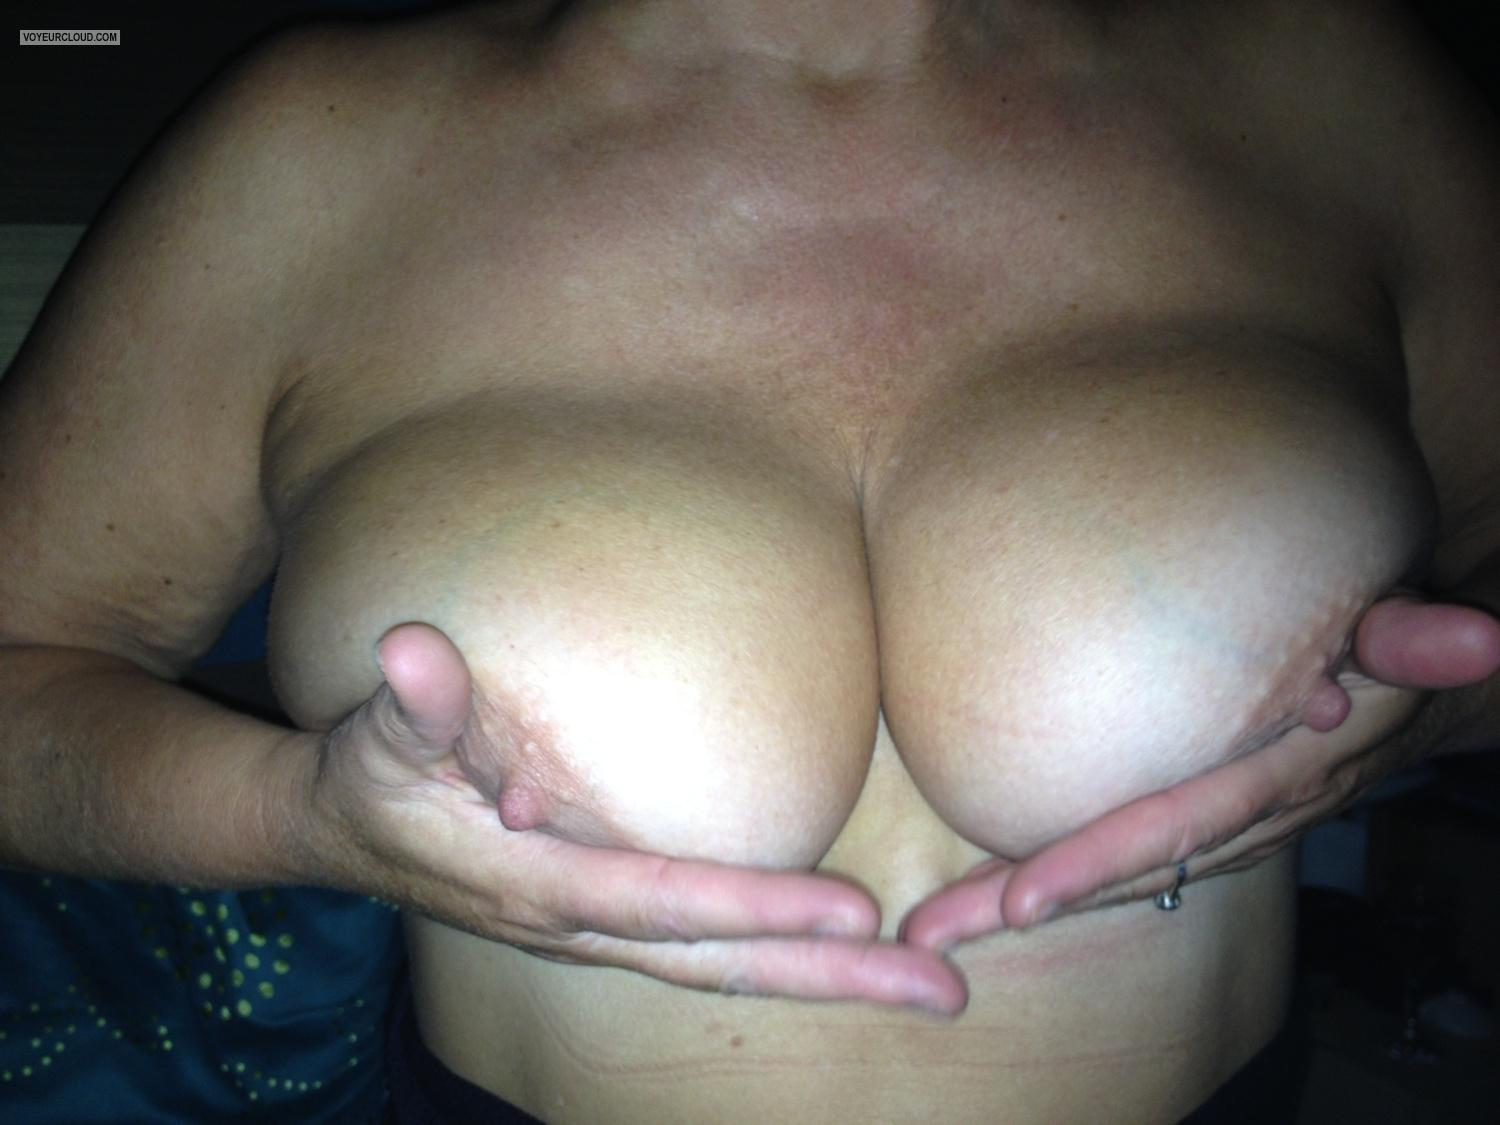 Tit Flash: Big Tits By IPhone - Goodboy from United Kingdom